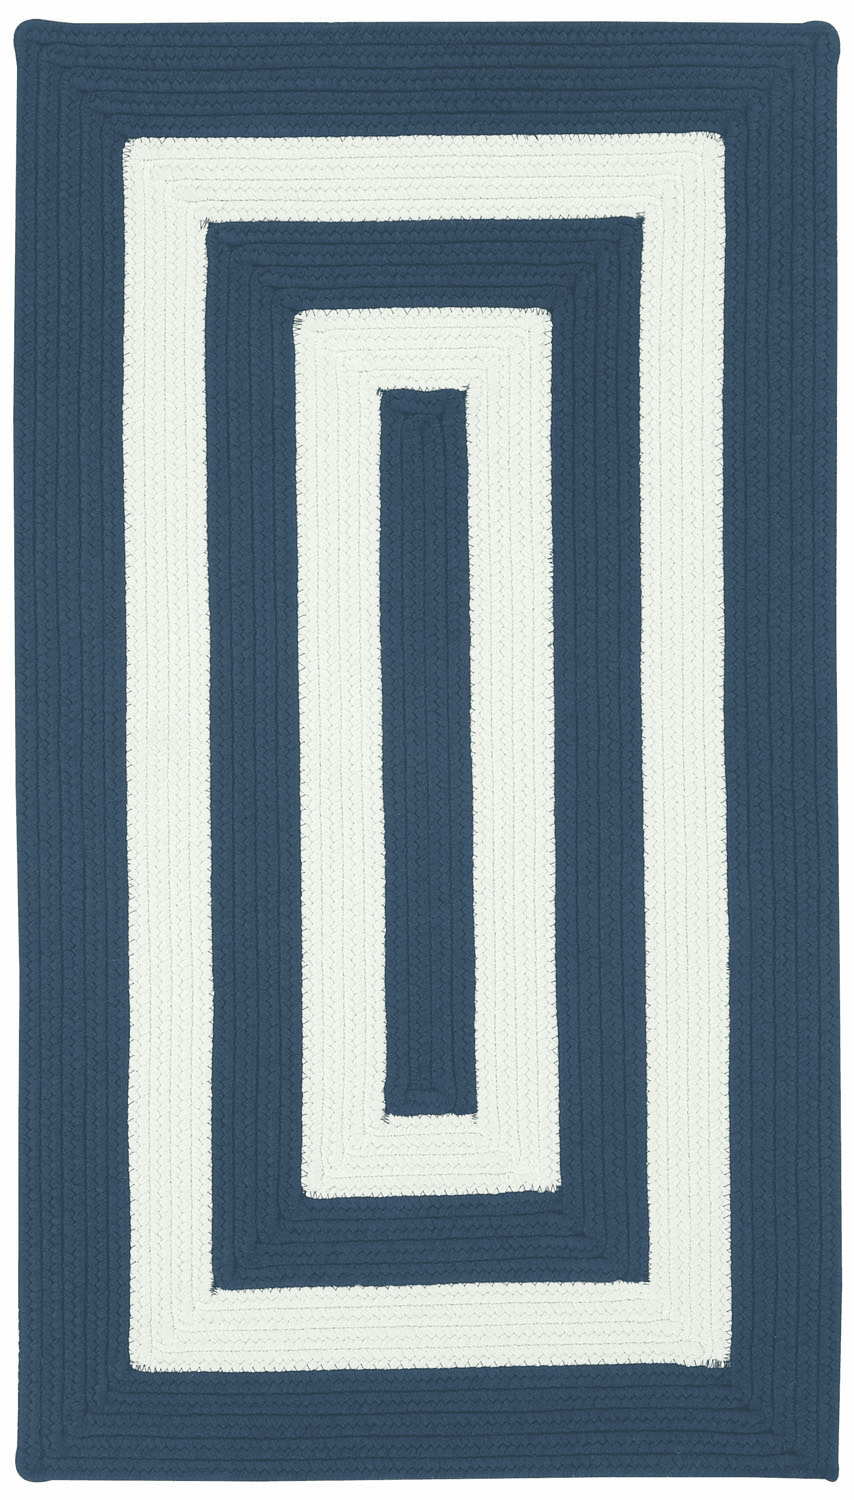 Hand-Braided Indigo and White Rug